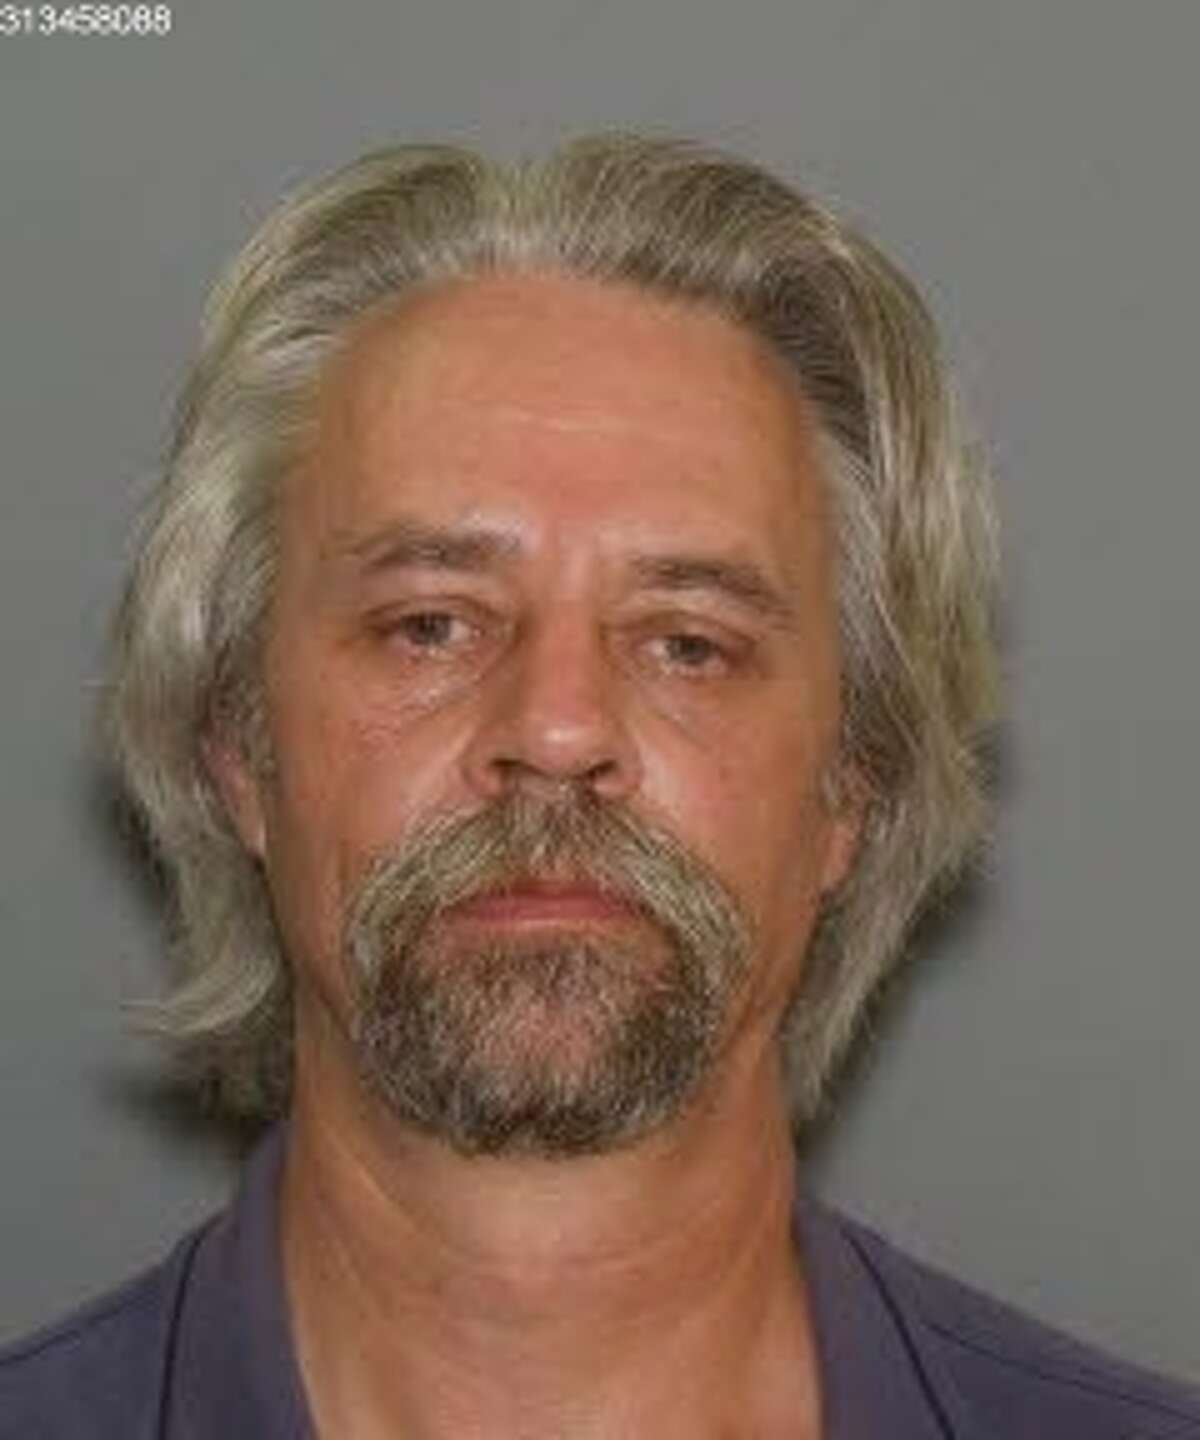 David W. Grinnell (State Police photo)